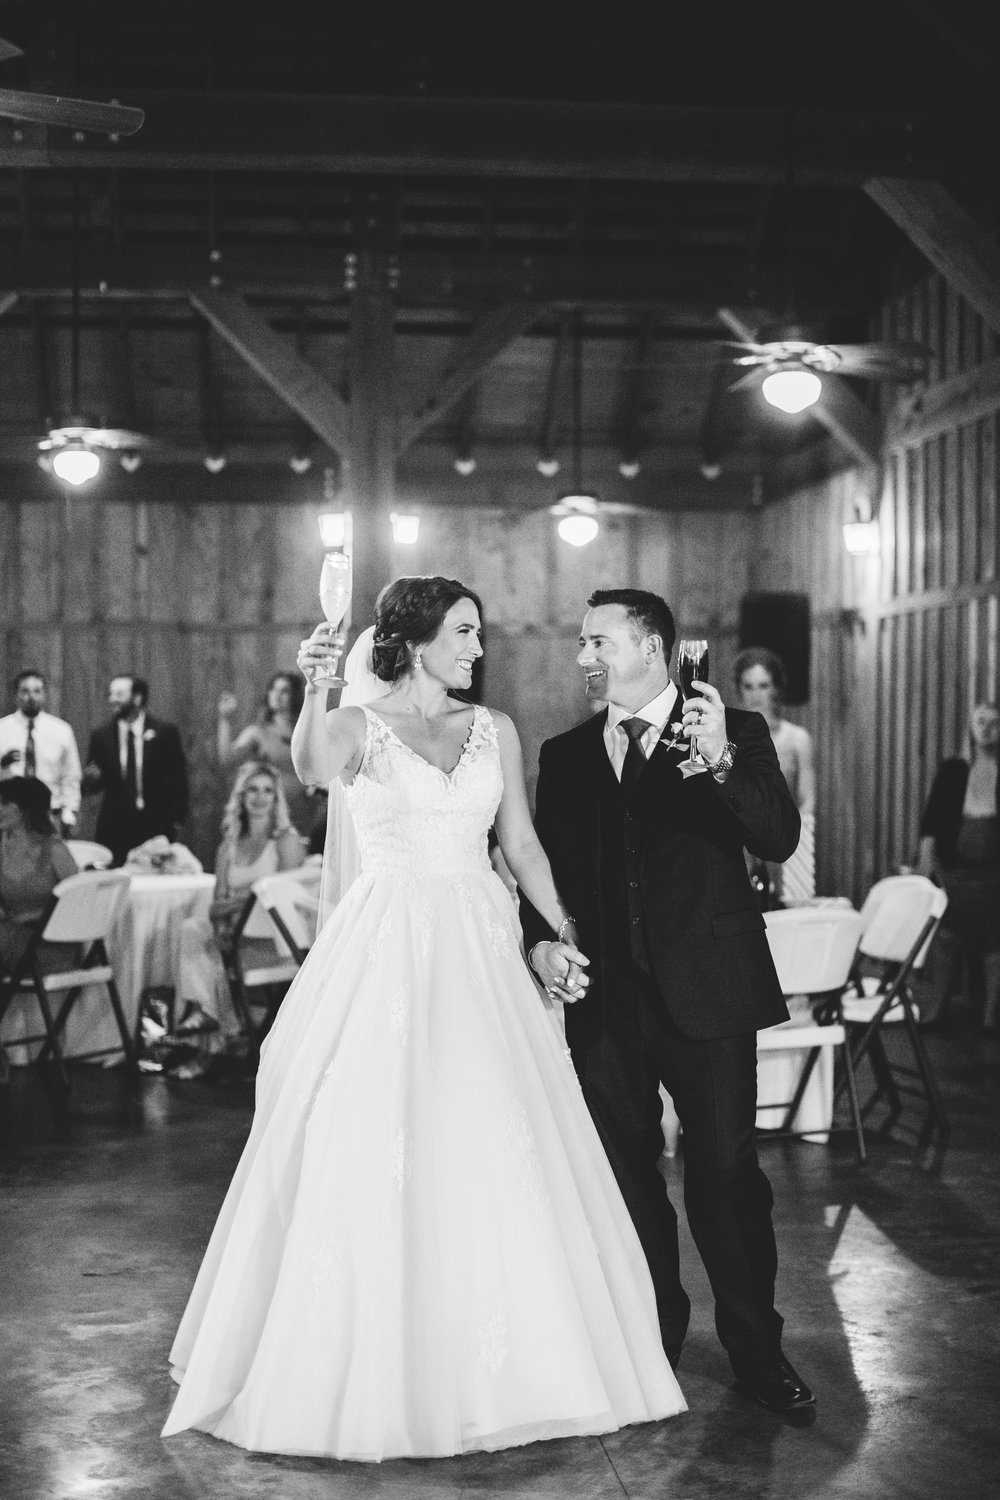 Rustic Weddings - This couple opted for a reception venue with natural exposed wood and their ceremony was outdoors underneath an oak tree.